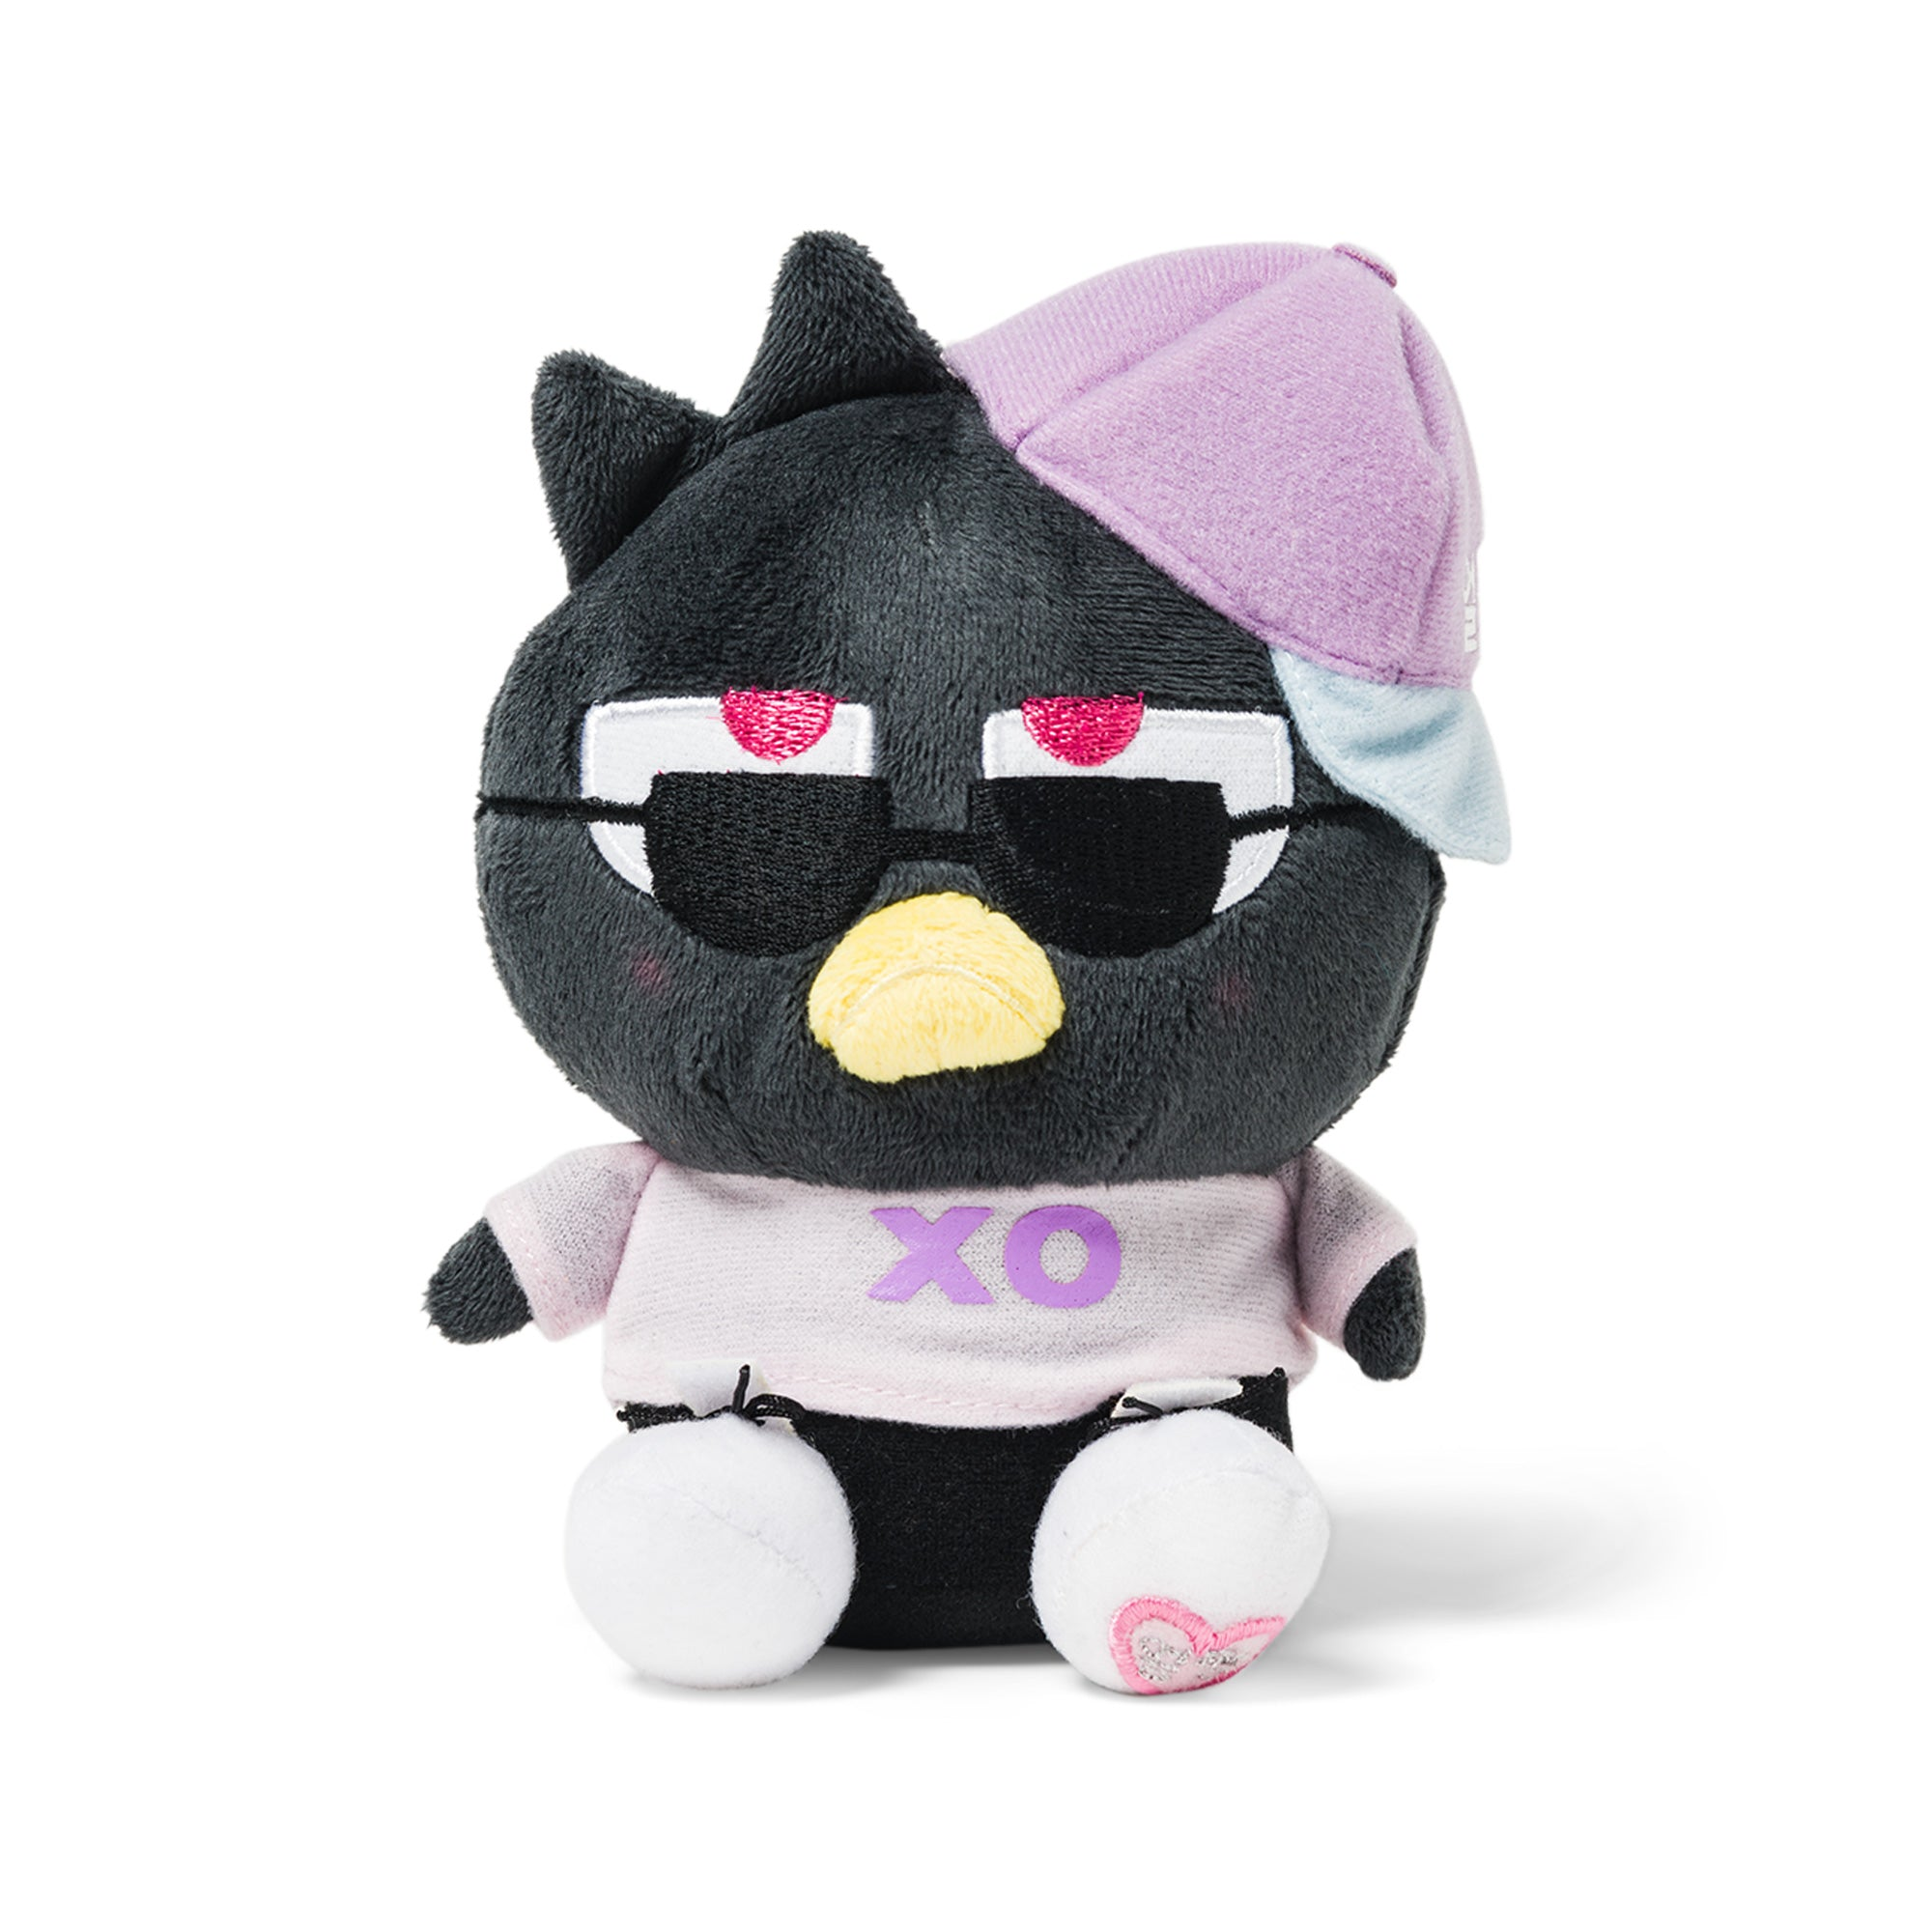 Badtz-Maru Ulzzang K-Pop Plush